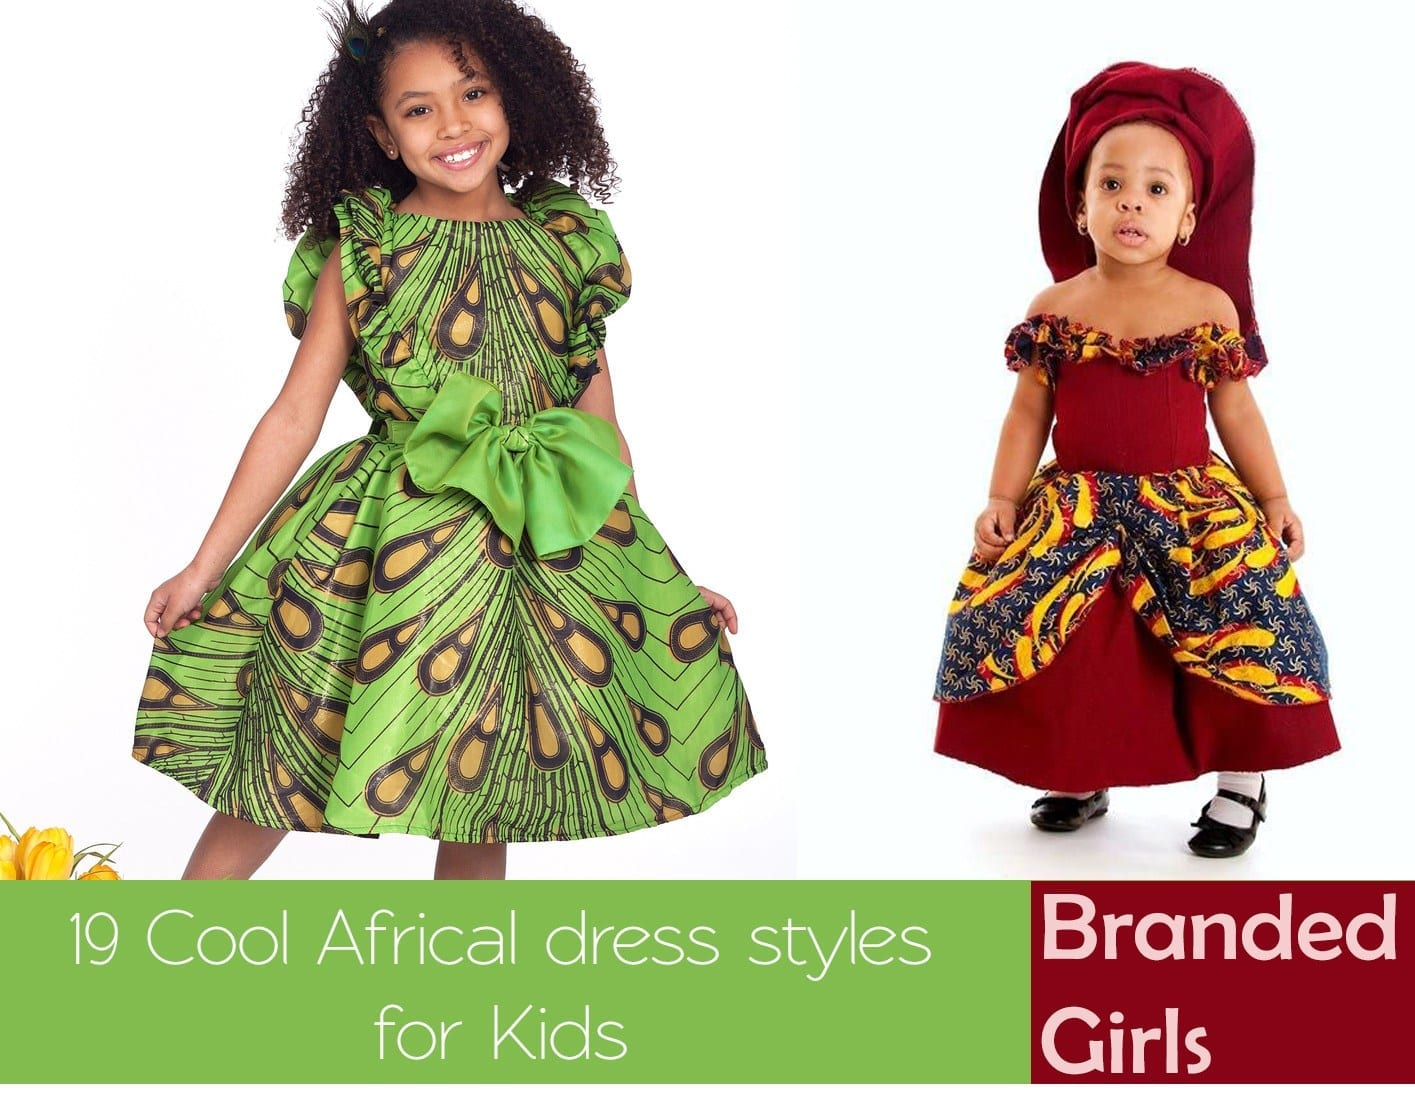 african-dress-styles African Dress Styles for Kids-19 Cute African Attire for Babies